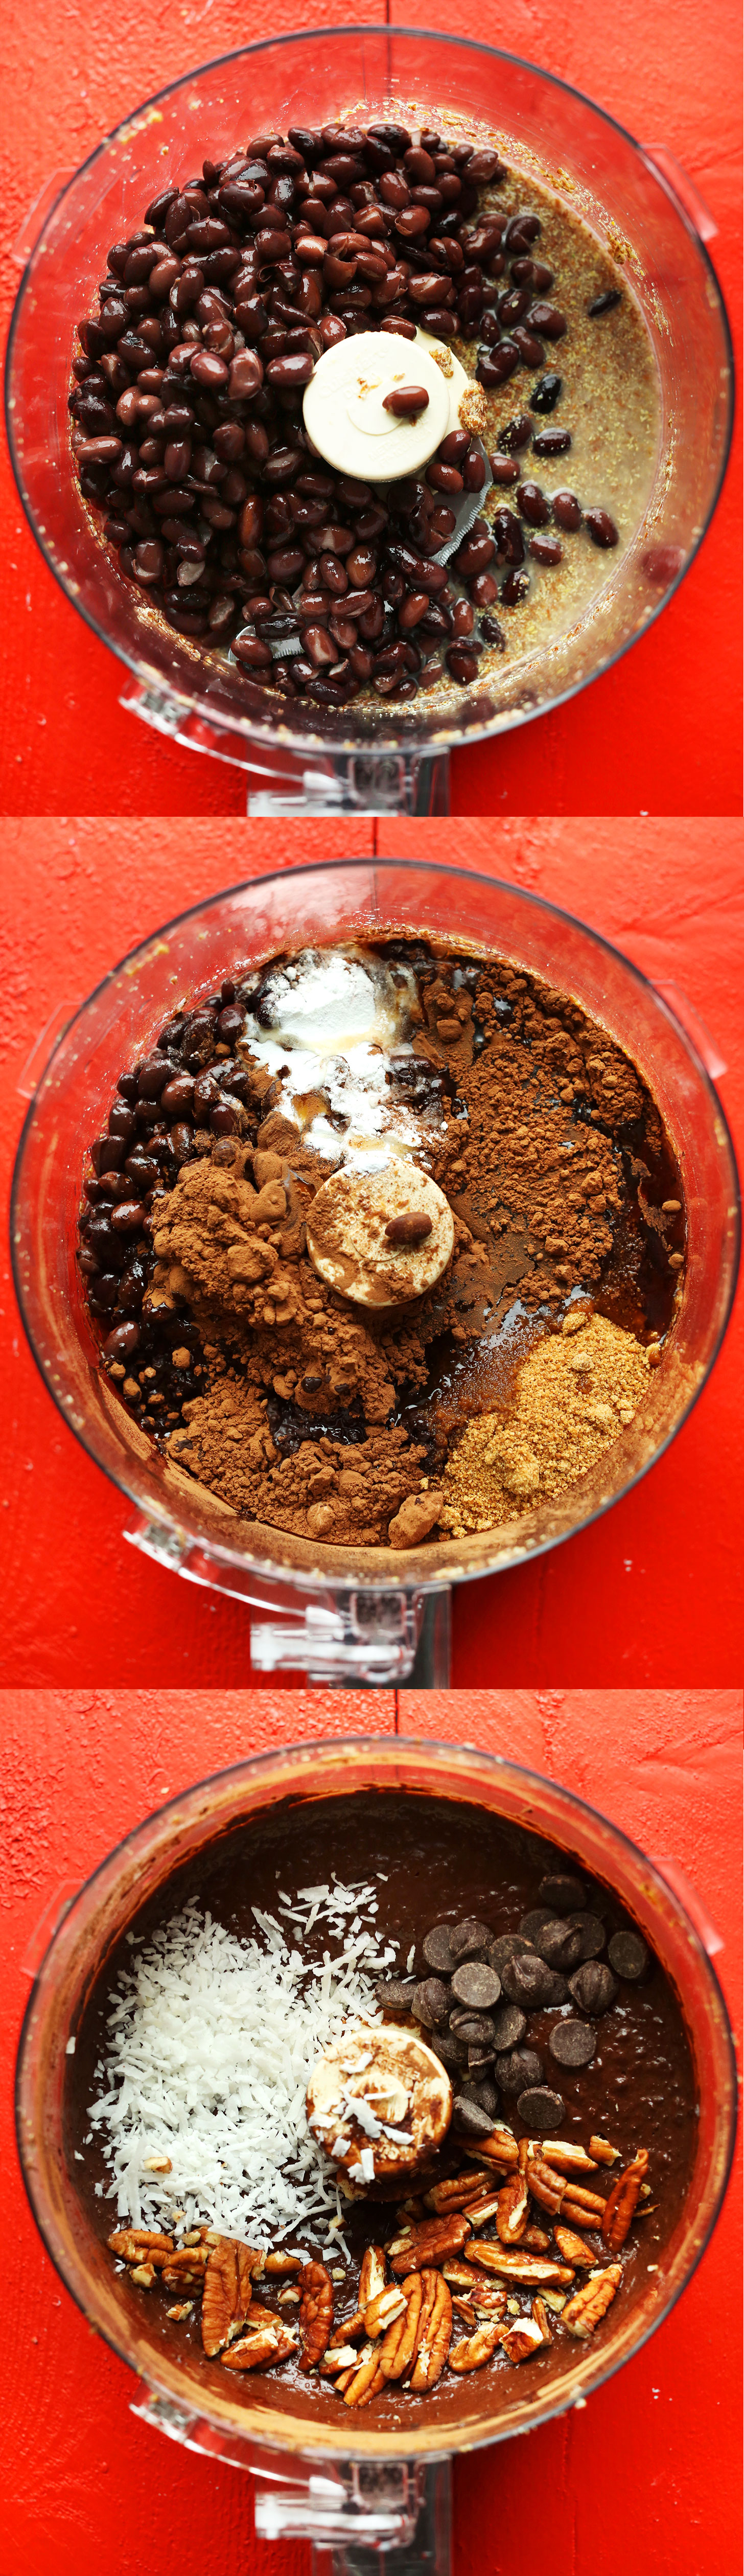 Three photos of the food processor showing the progression of adding ingredients to make Turtle Brownies